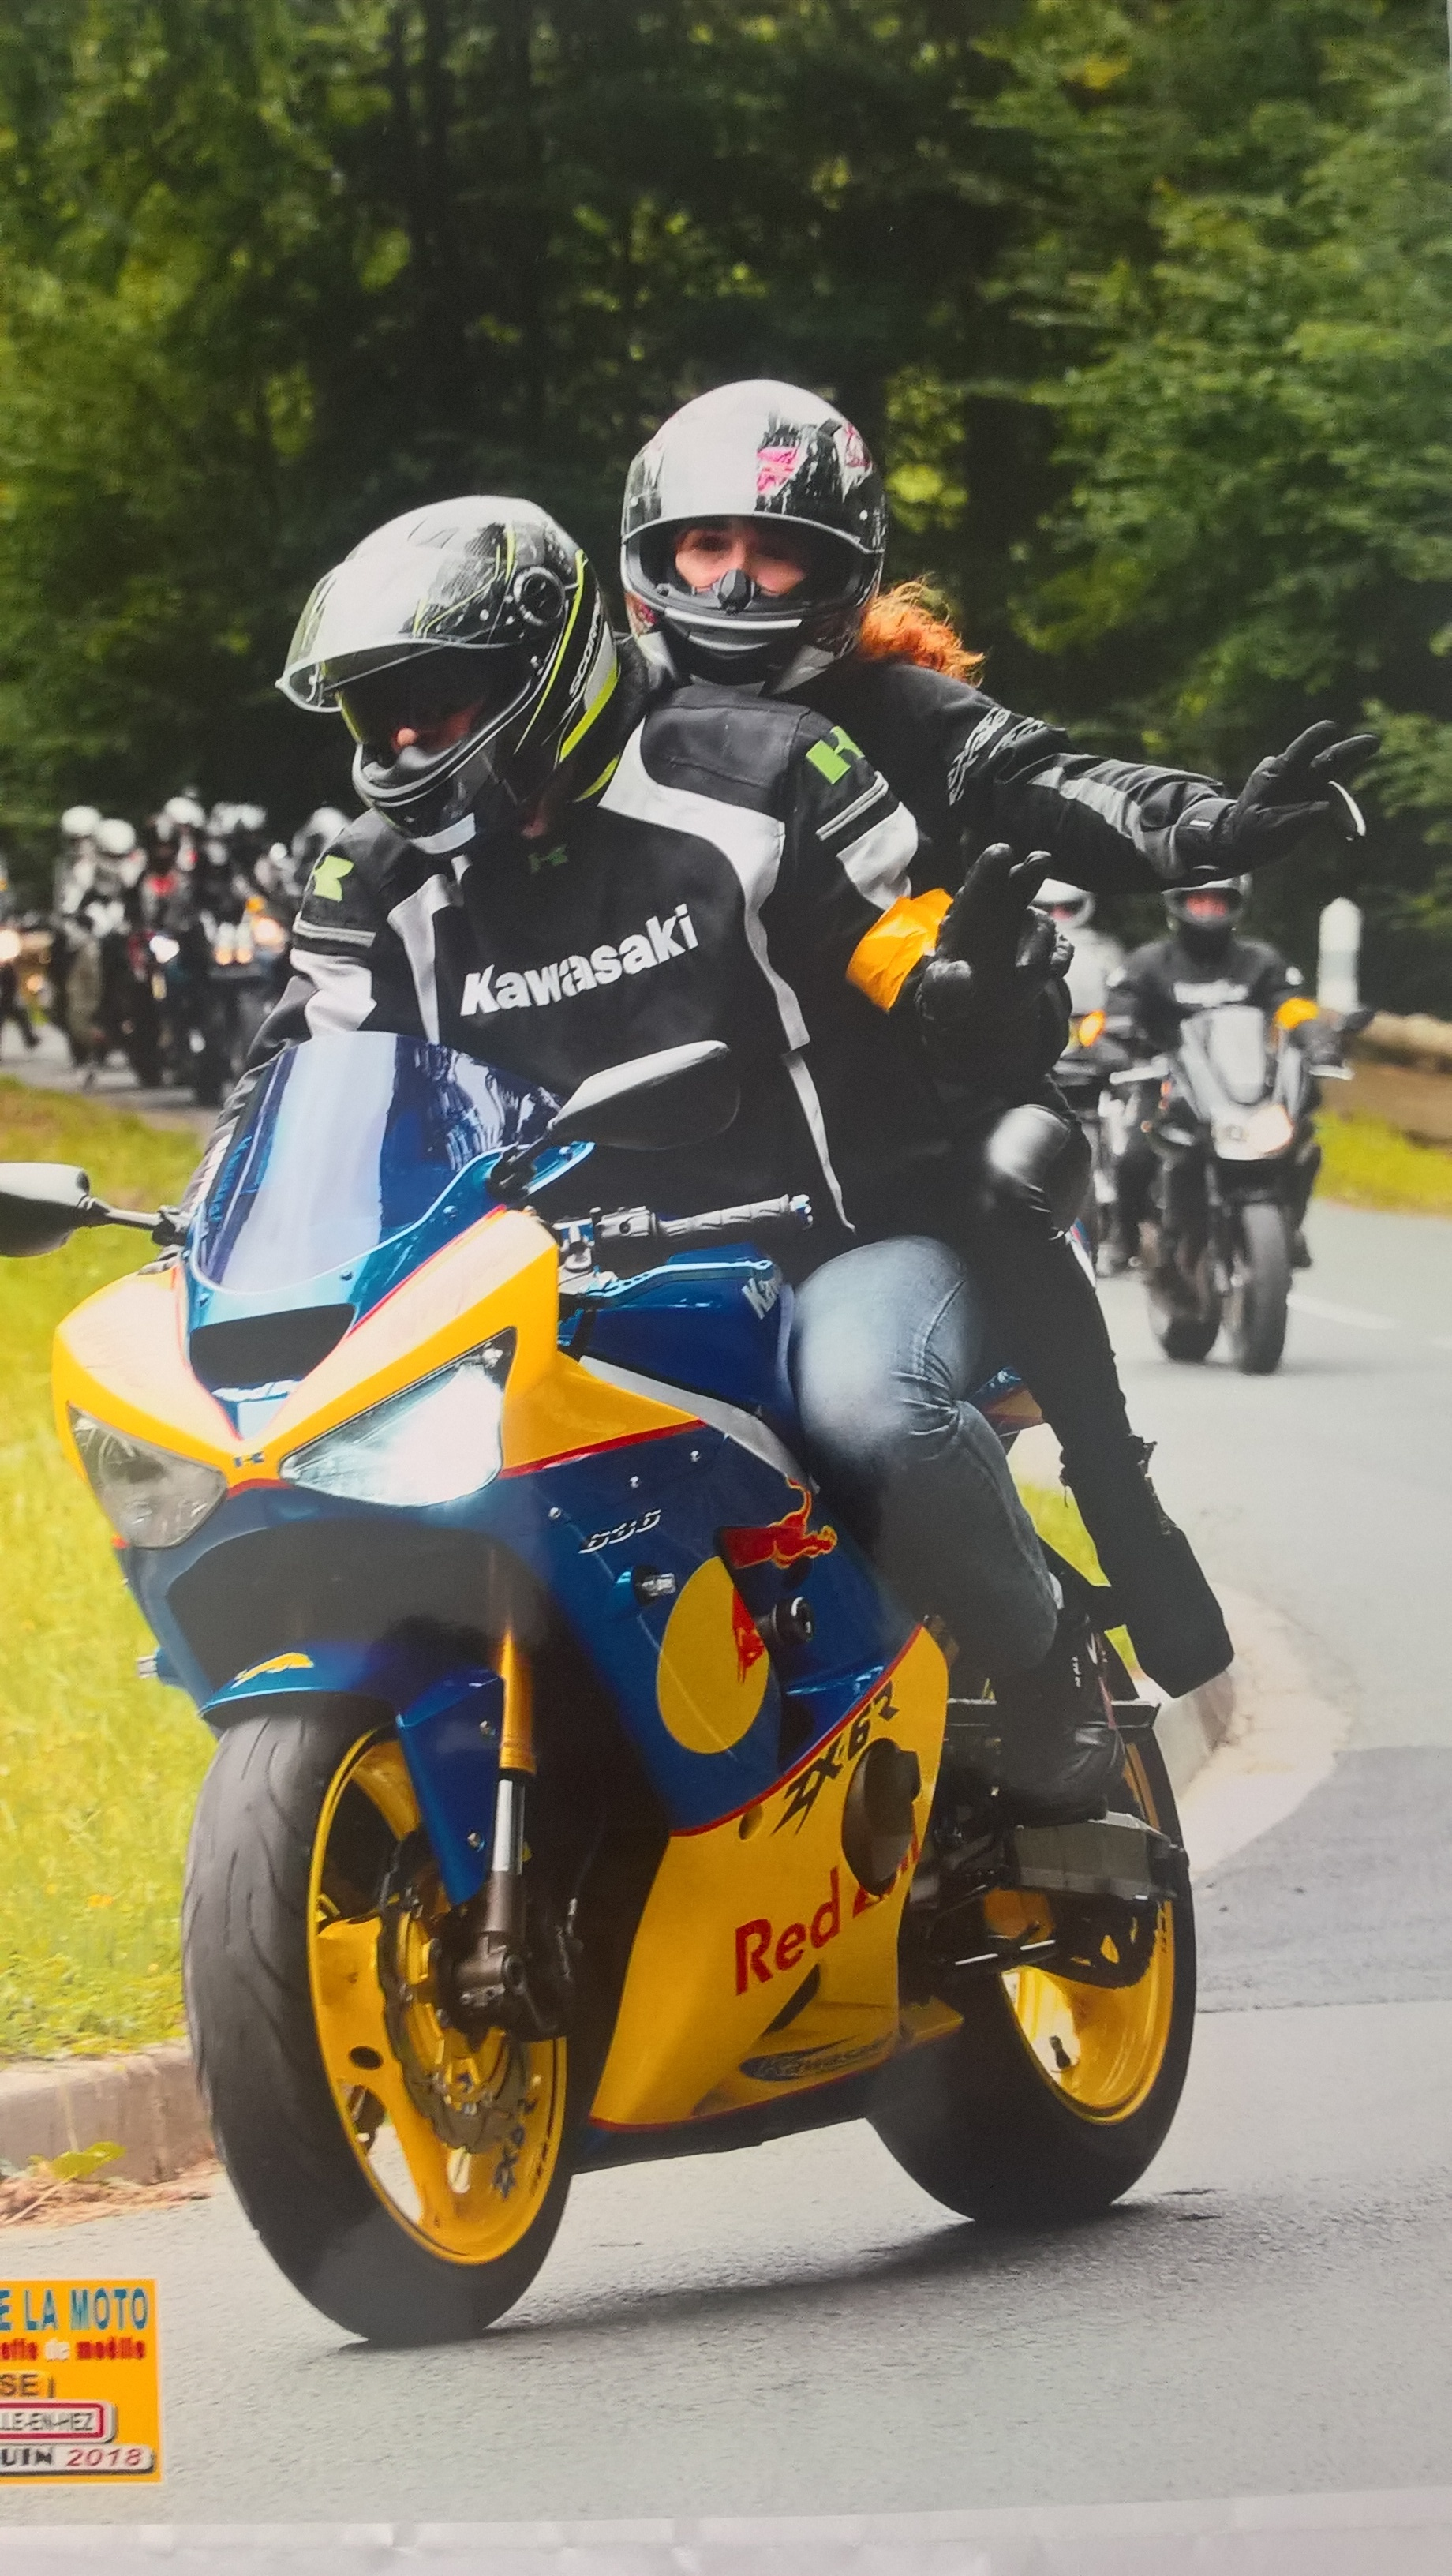 zx6r red bull - Page 2 180622085055158465